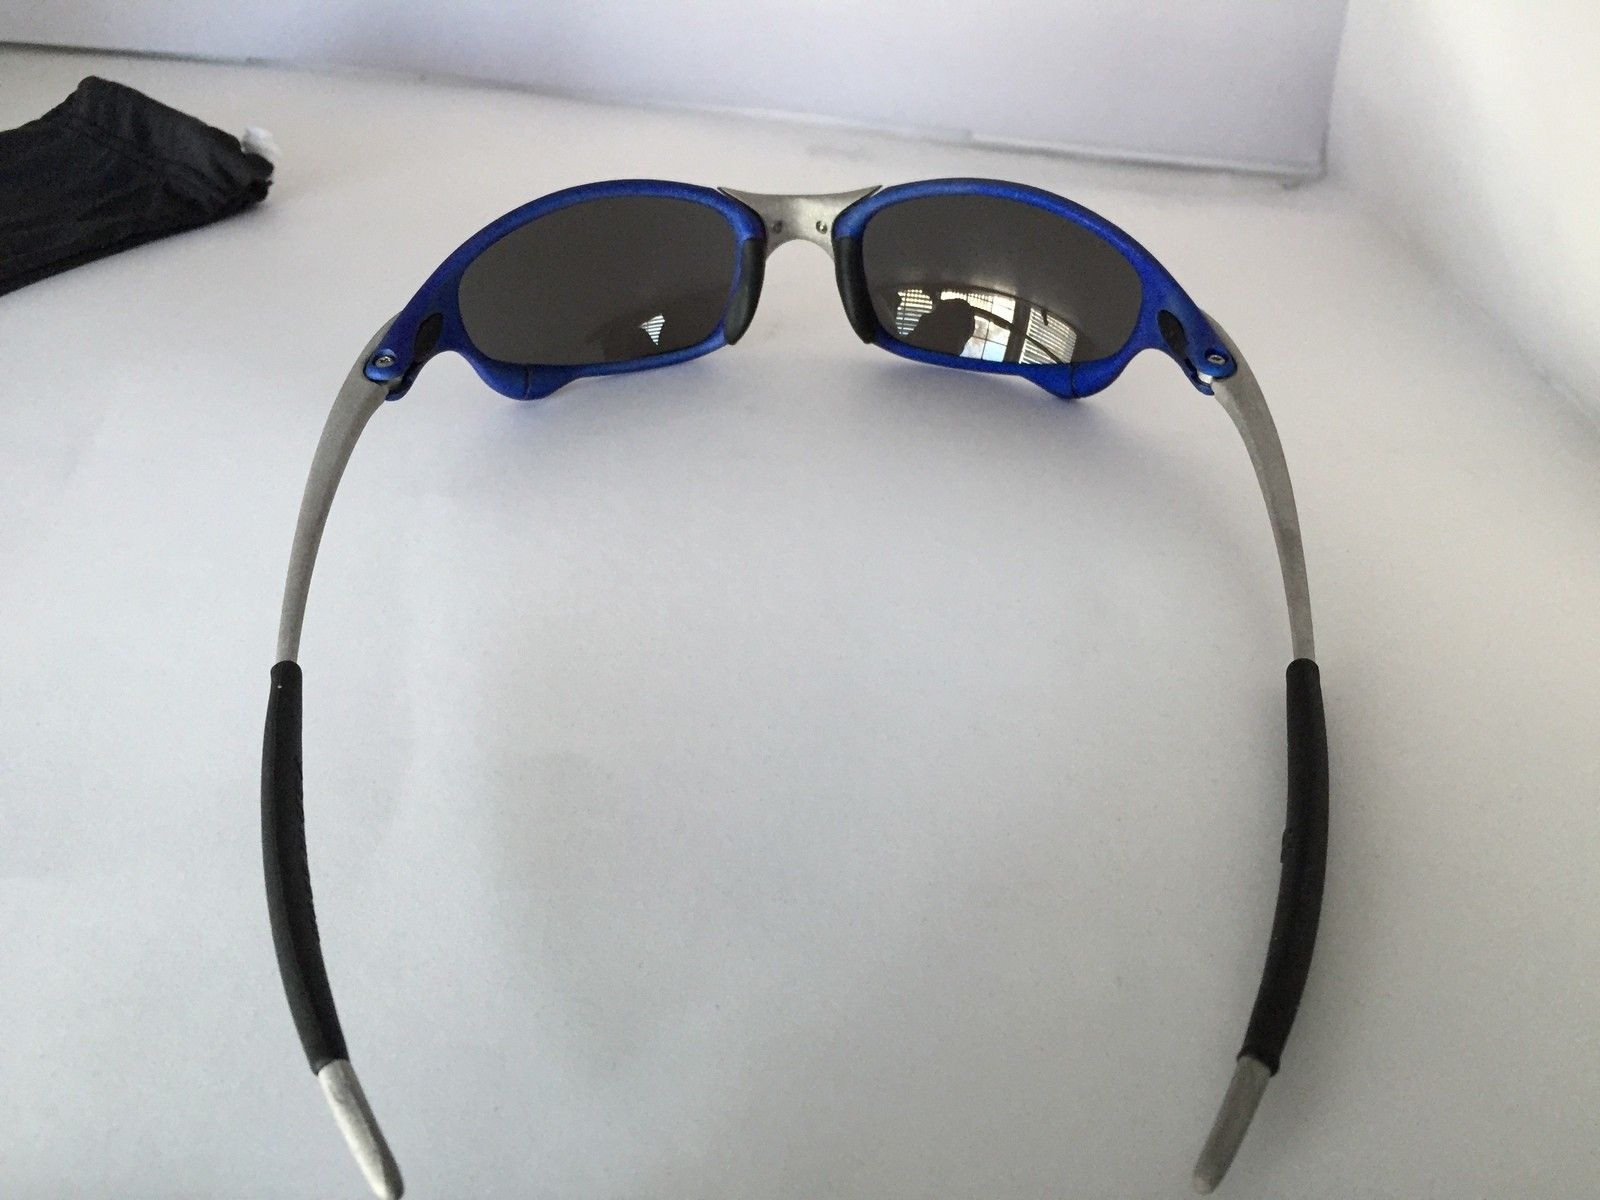 Anodized Juliet Dallas Cowboys colors Blue/Silver w/ OEM Ice Lenses - IMG_1788.JPG